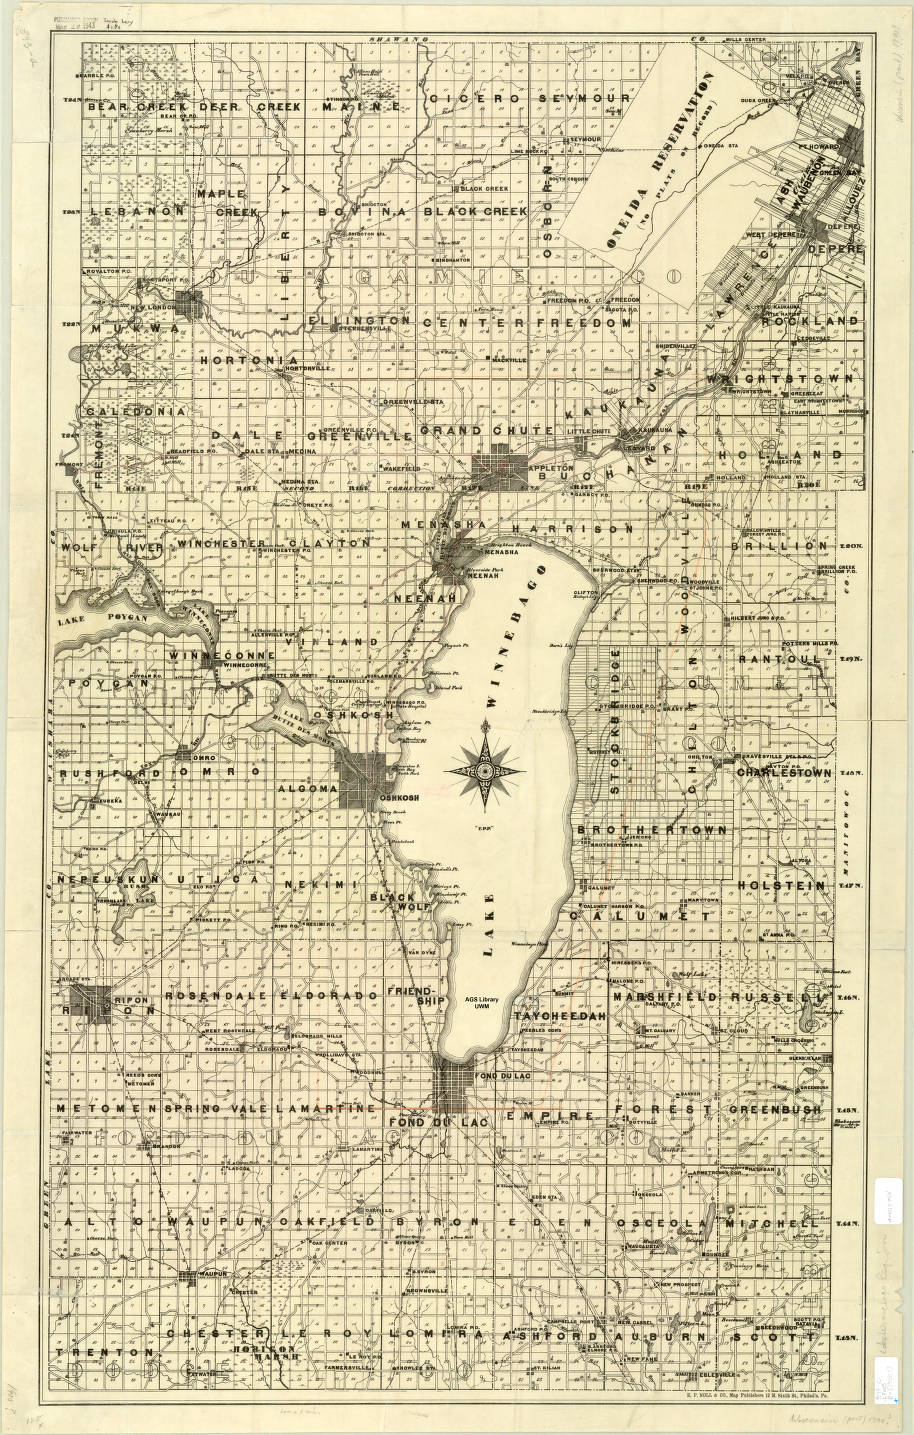 Lake Winnebago, Wisconsin 1900 - American Geographical ... on map of uranus, map of cold mountain, map of jfk, map of luna, map of the great war, map of brazil, map of greed, map of italy, map of police, map of iran, map of new york, new york, map of barbara, map of 49th parallel, map of life is beautiful, map of wolf, map of gettysburg, map of apocalypse now, map of network, map of zulu,